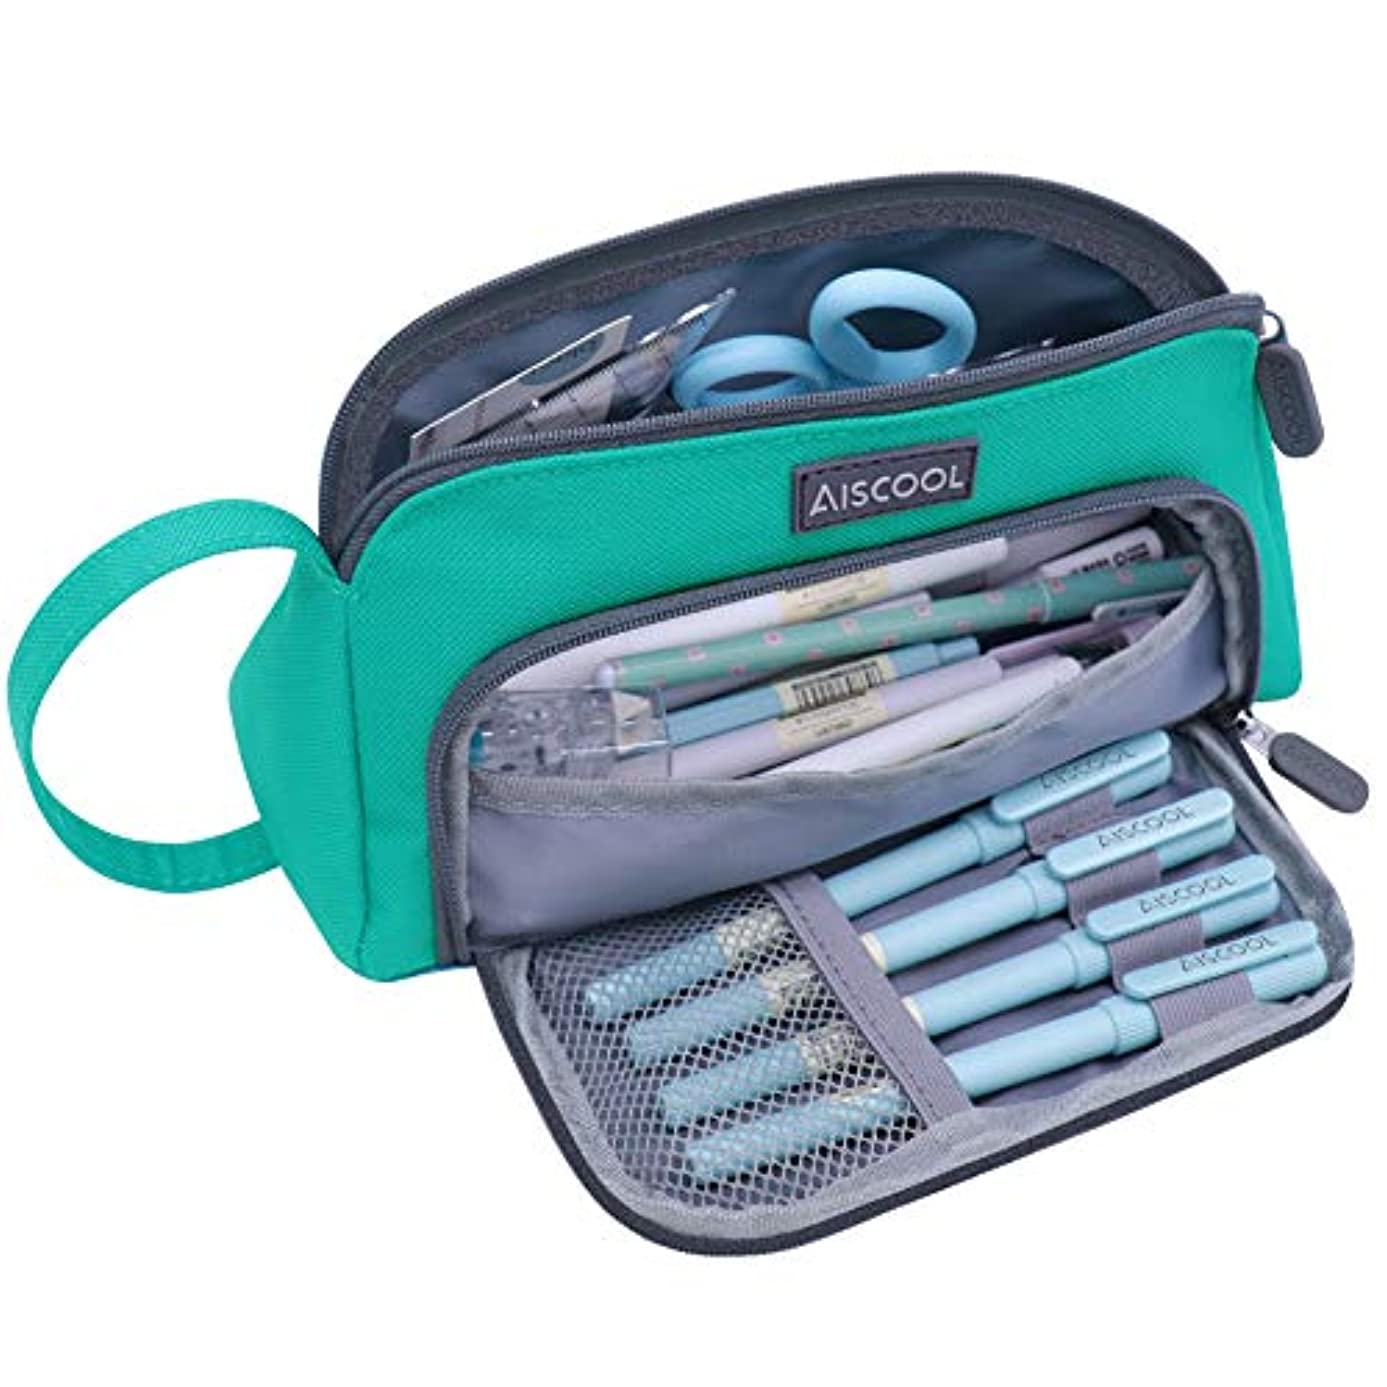 Aiscool Pencil Case Big Capacity Large Pencil Pouch Organizer Pen Bag Holder Stationery Box with Zipper and Compartments 1.5L Storage School Supplies College Office Boys and Girls Adult (Green)